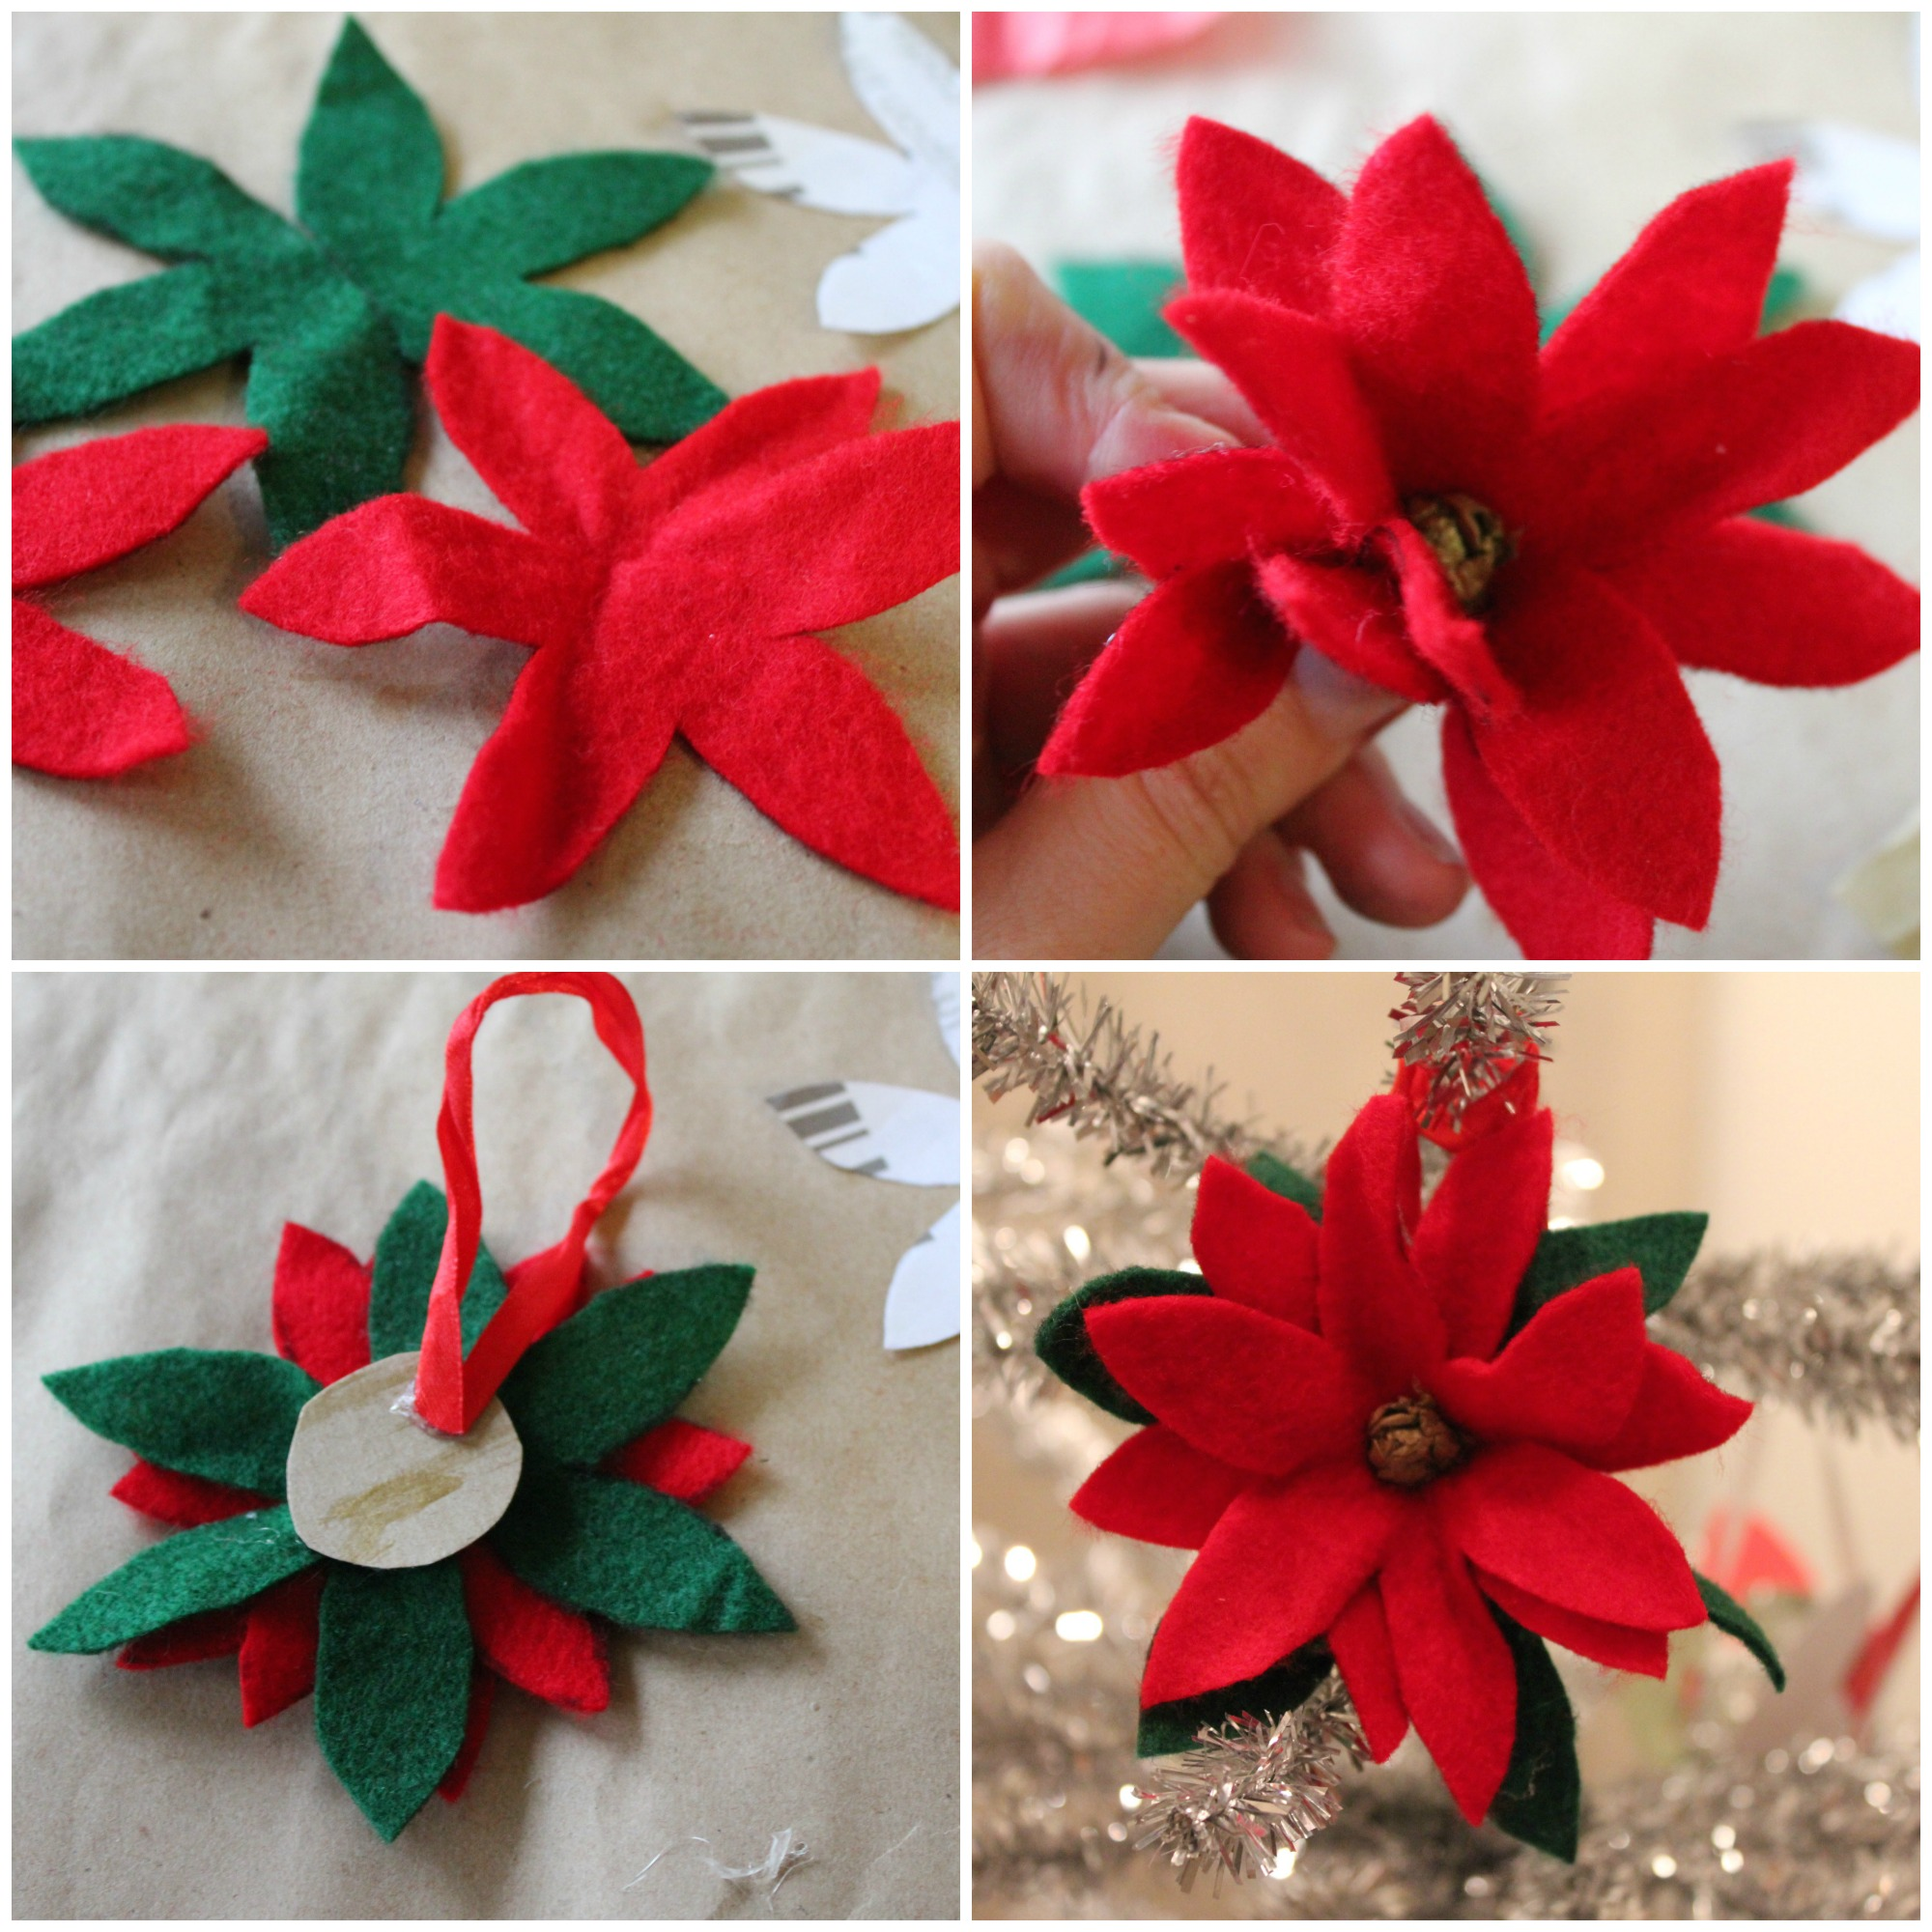 Diy Christmas Decorations Diy Christmas Ornaments Inspired By World Cultures Multicultural